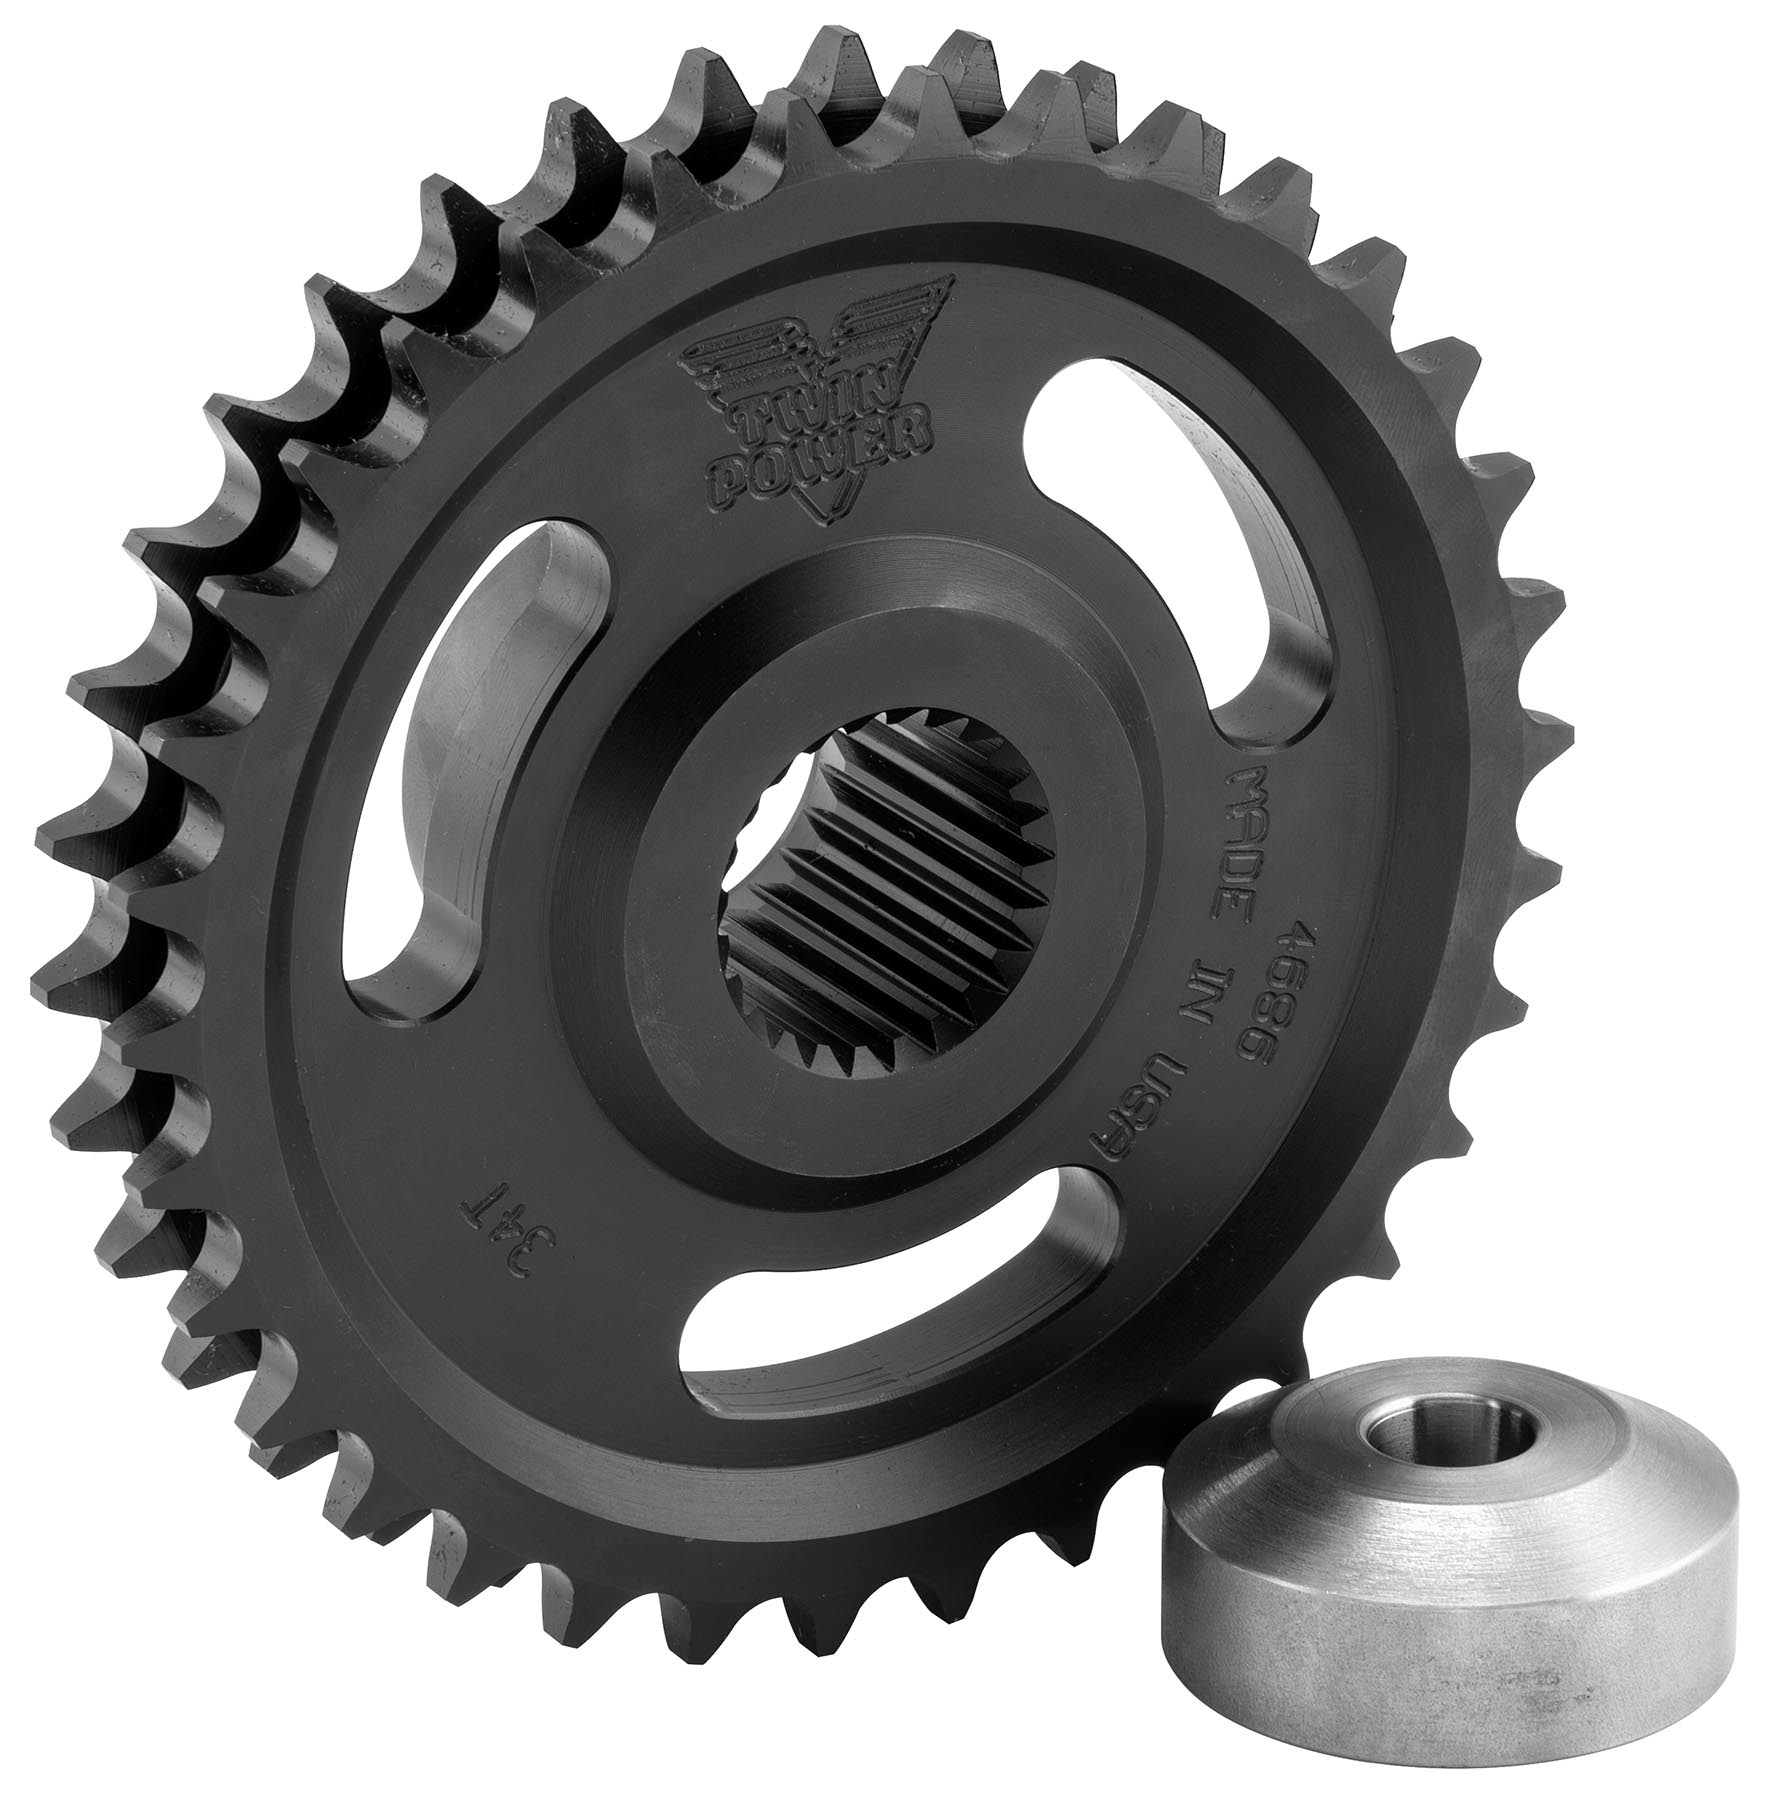 TUCKER - 216099 Compensatr Elimntor - Twin Power